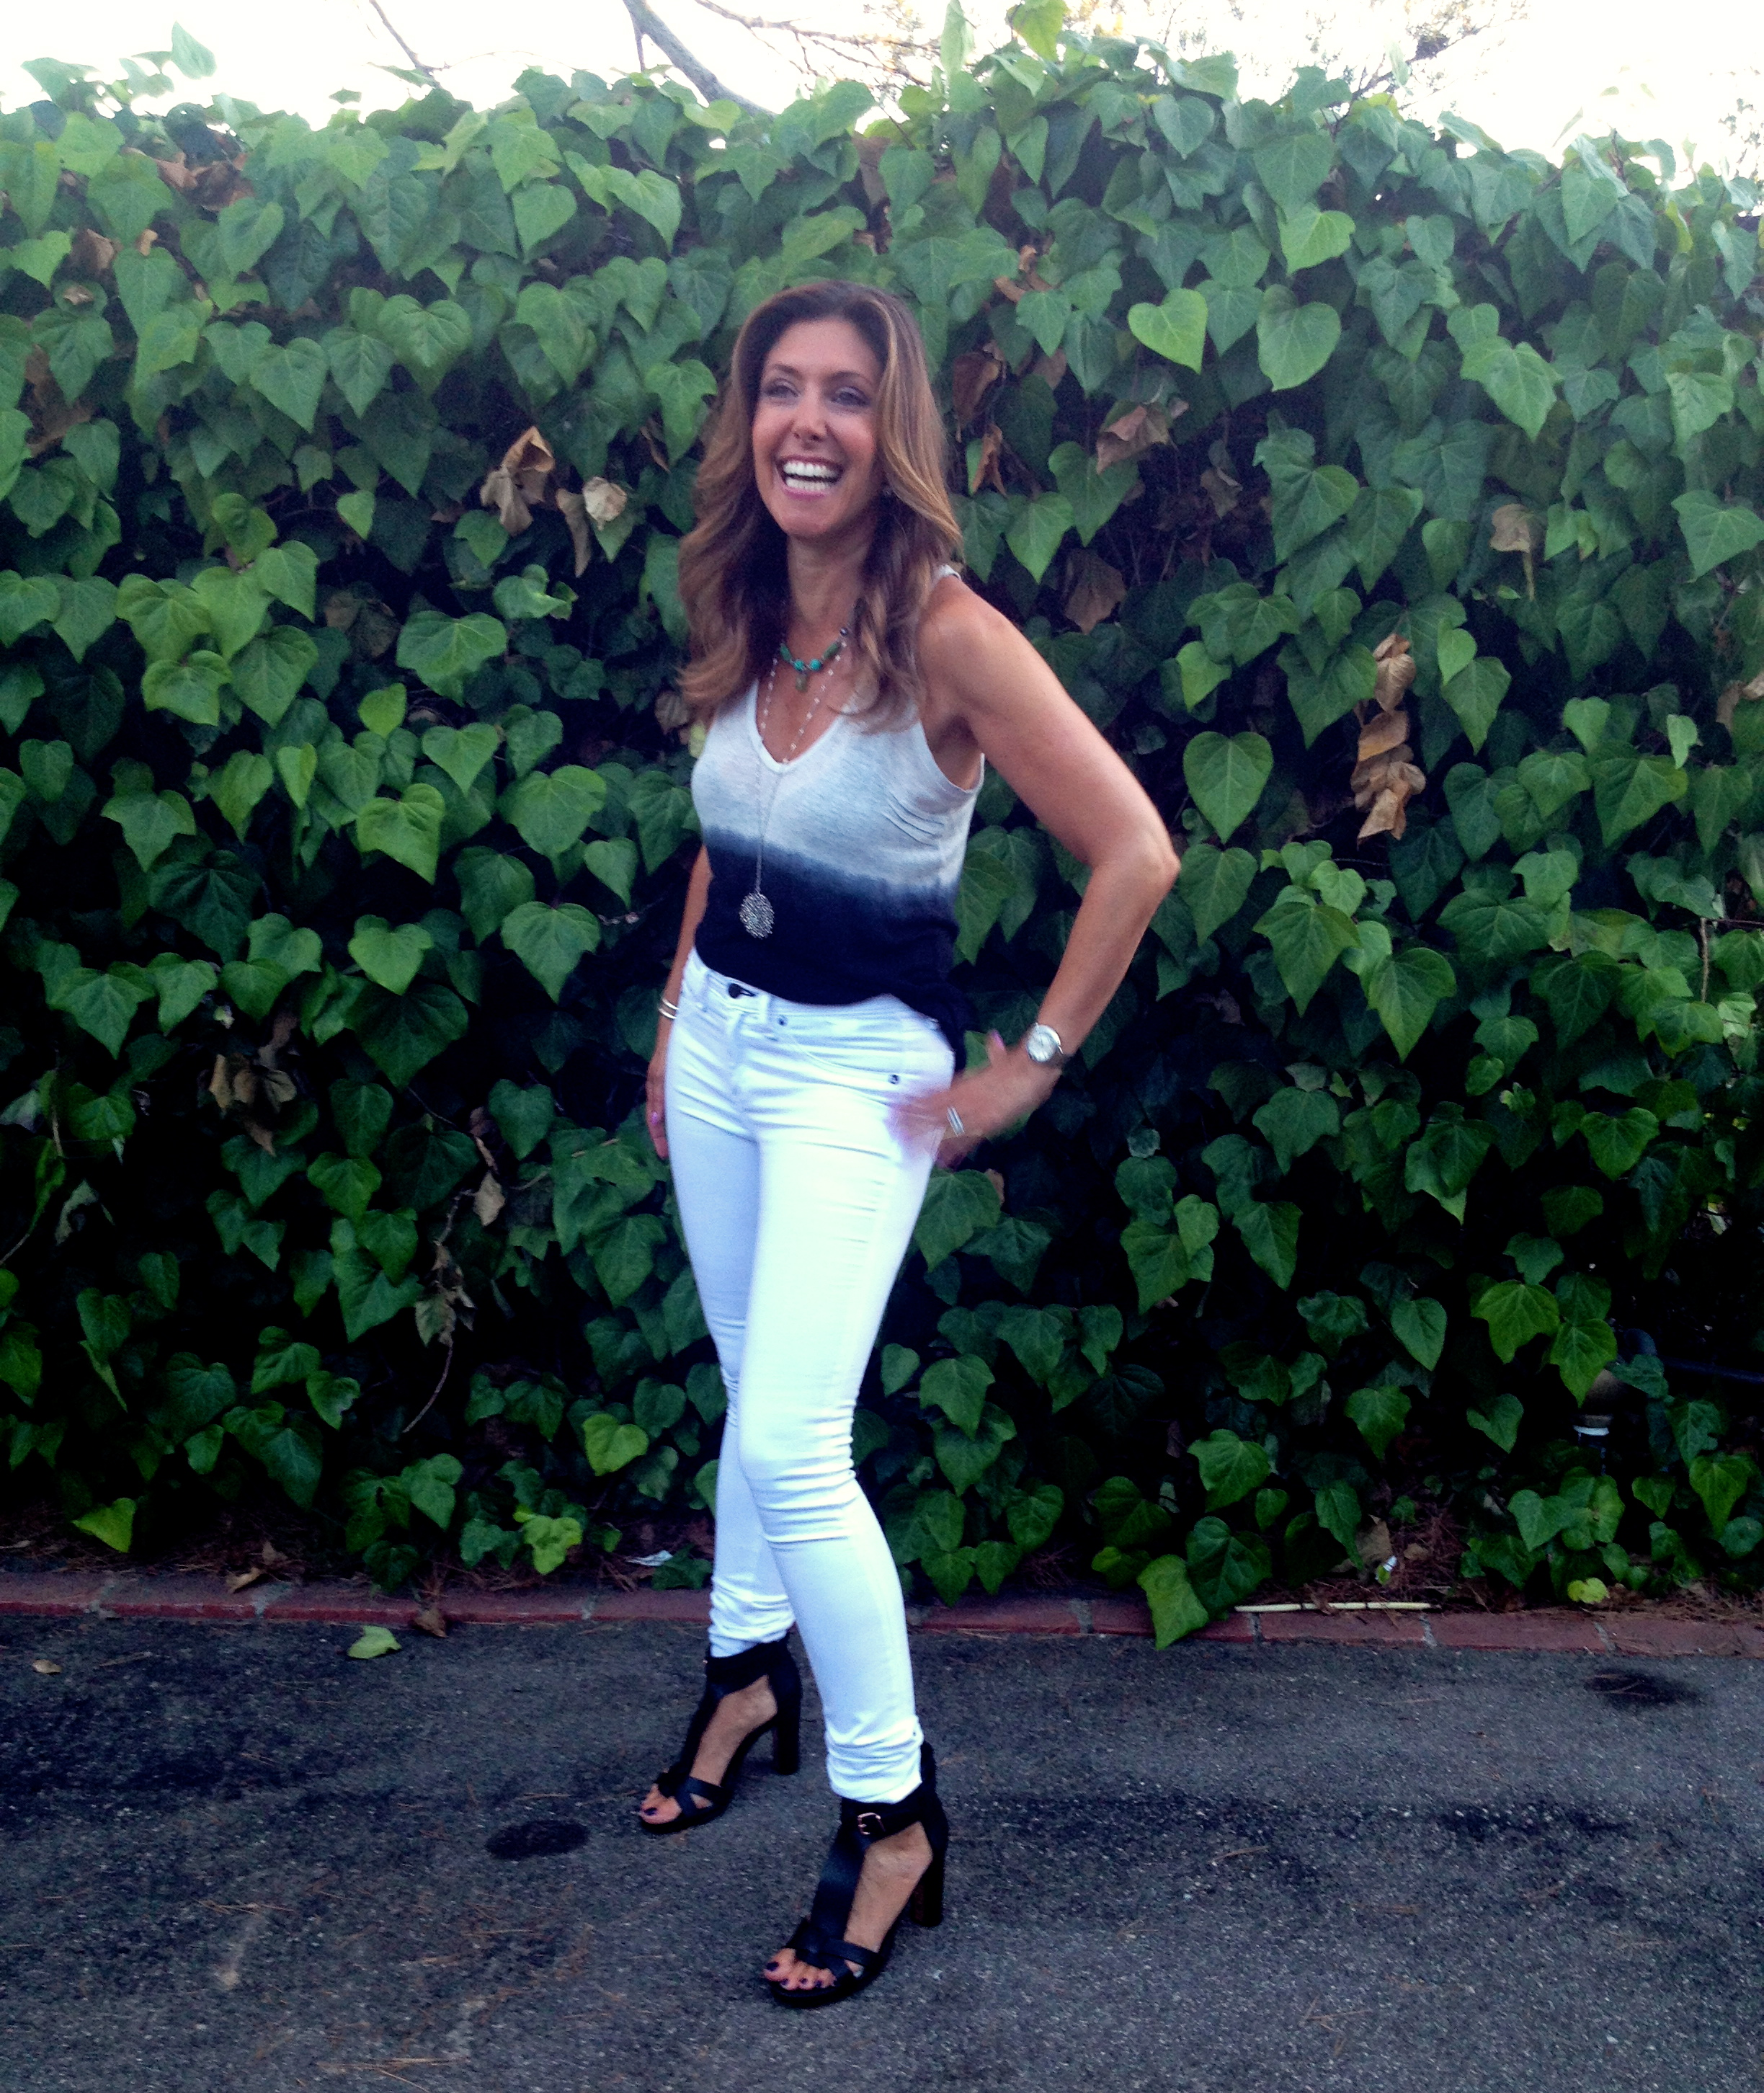 Top by  Zadig & Voltaire $101  . Pants: high-rise rag & bone white skinnies, $176.  Shoes:  Veronique Branquinho $190 .